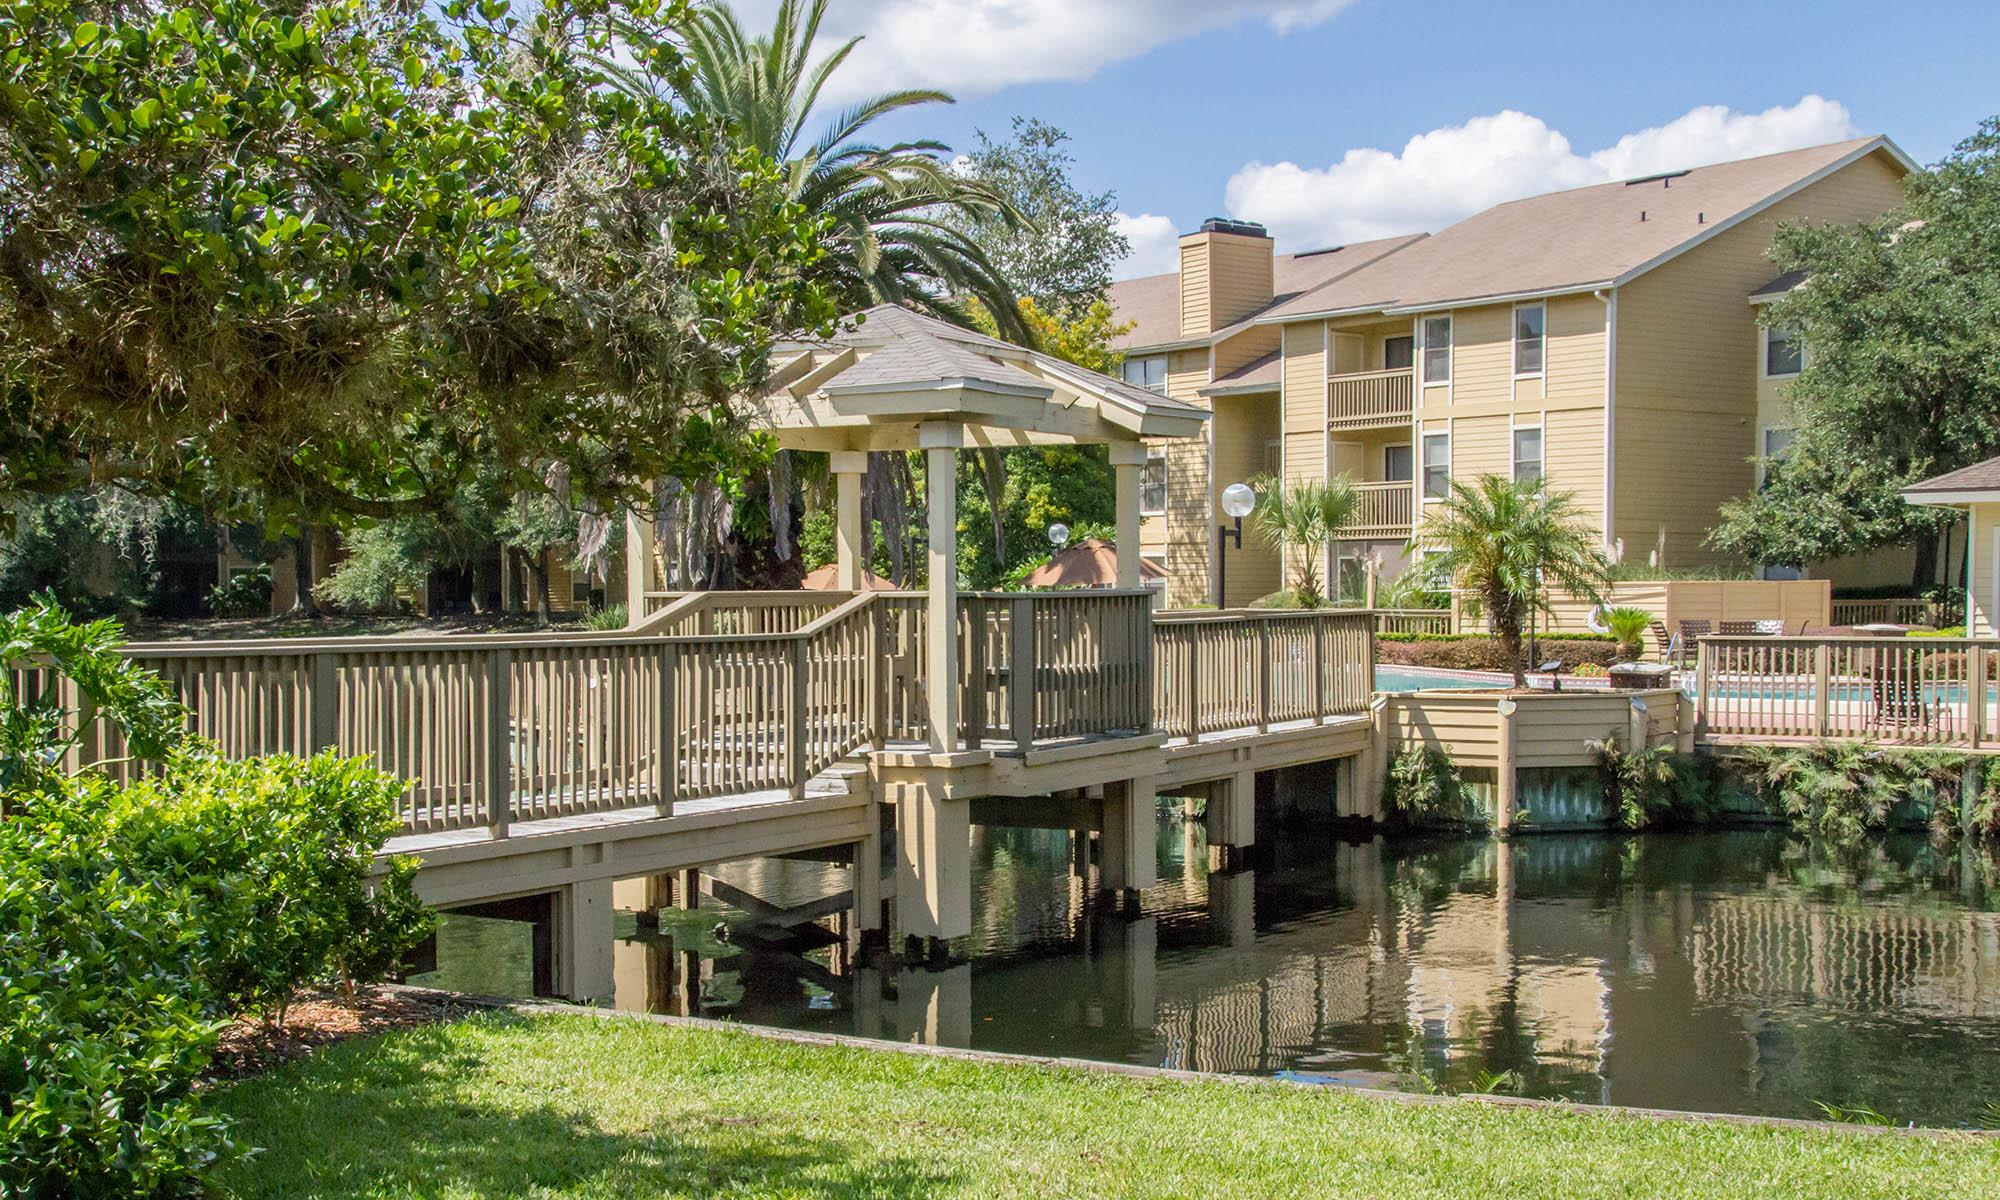 Contact Autumn Cove for information about our apartments in Orange Park